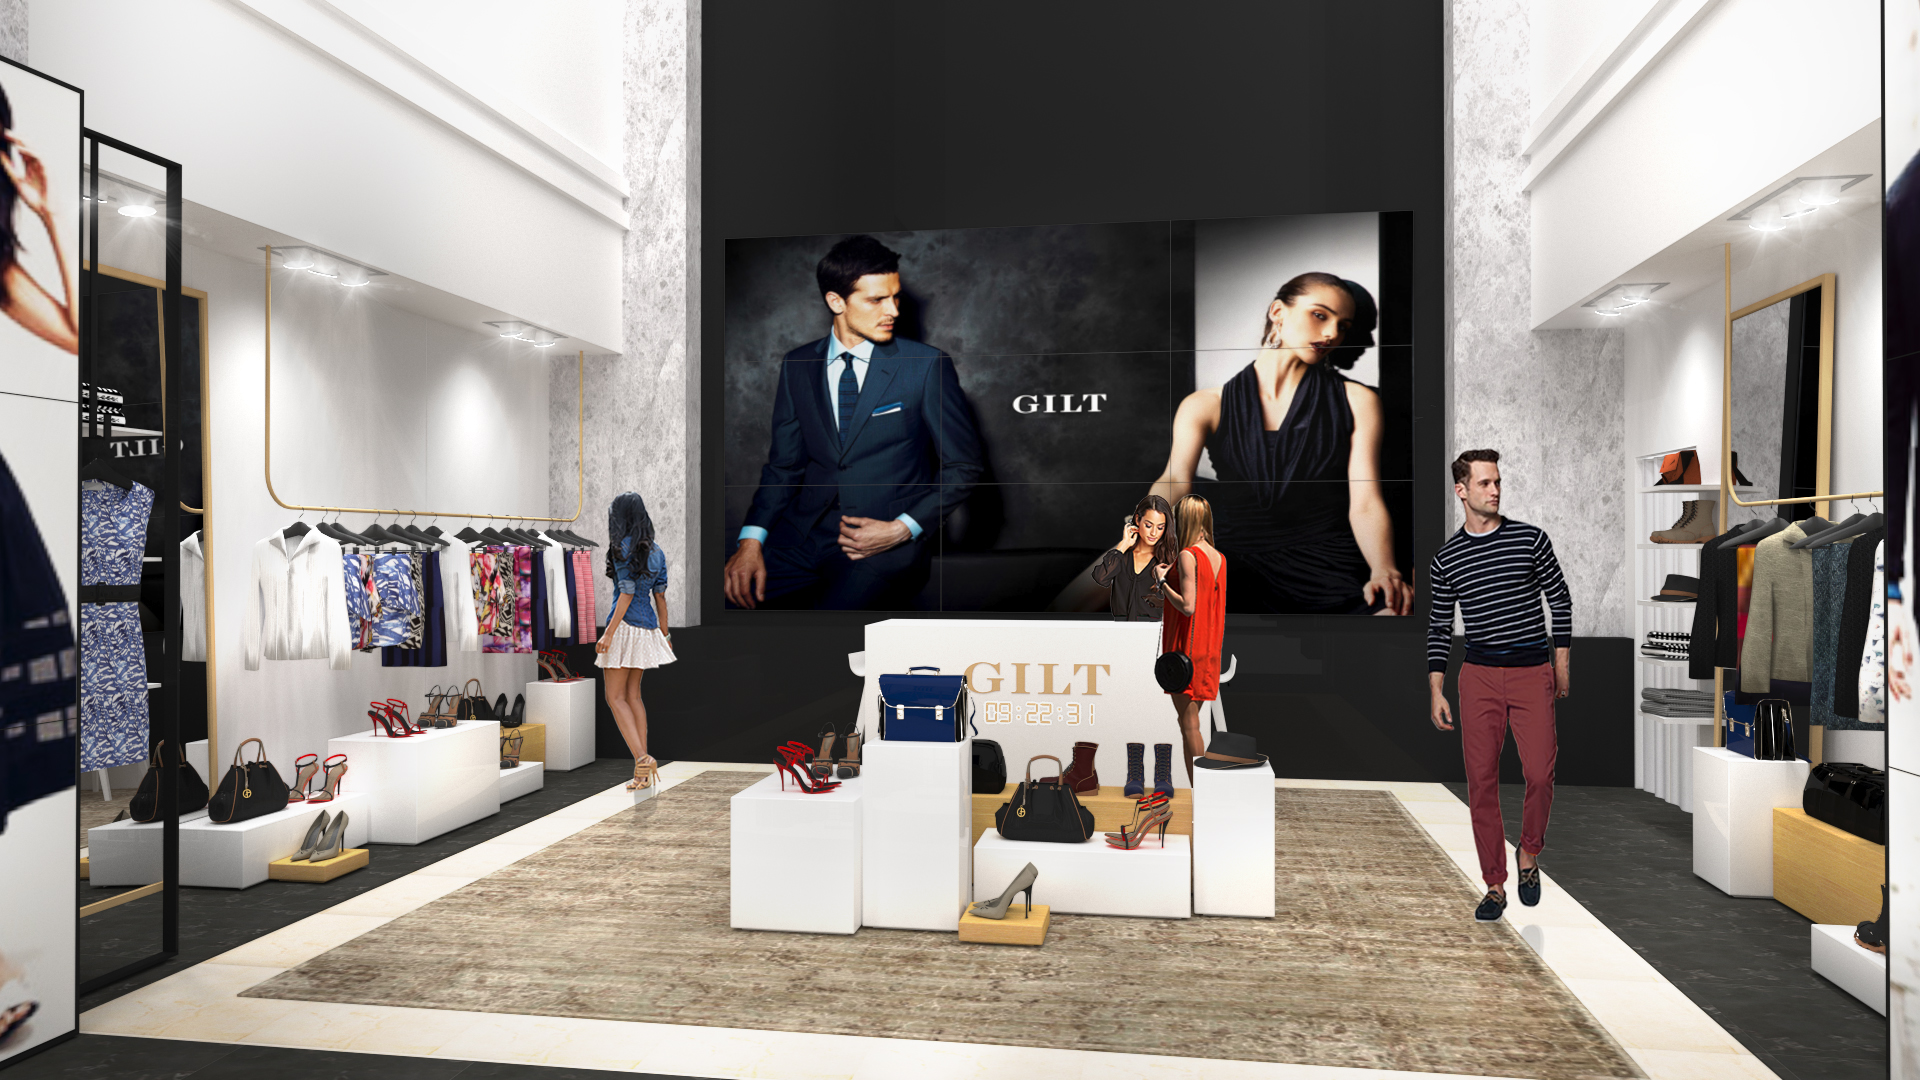 A rendering of Gilt's in-store shop